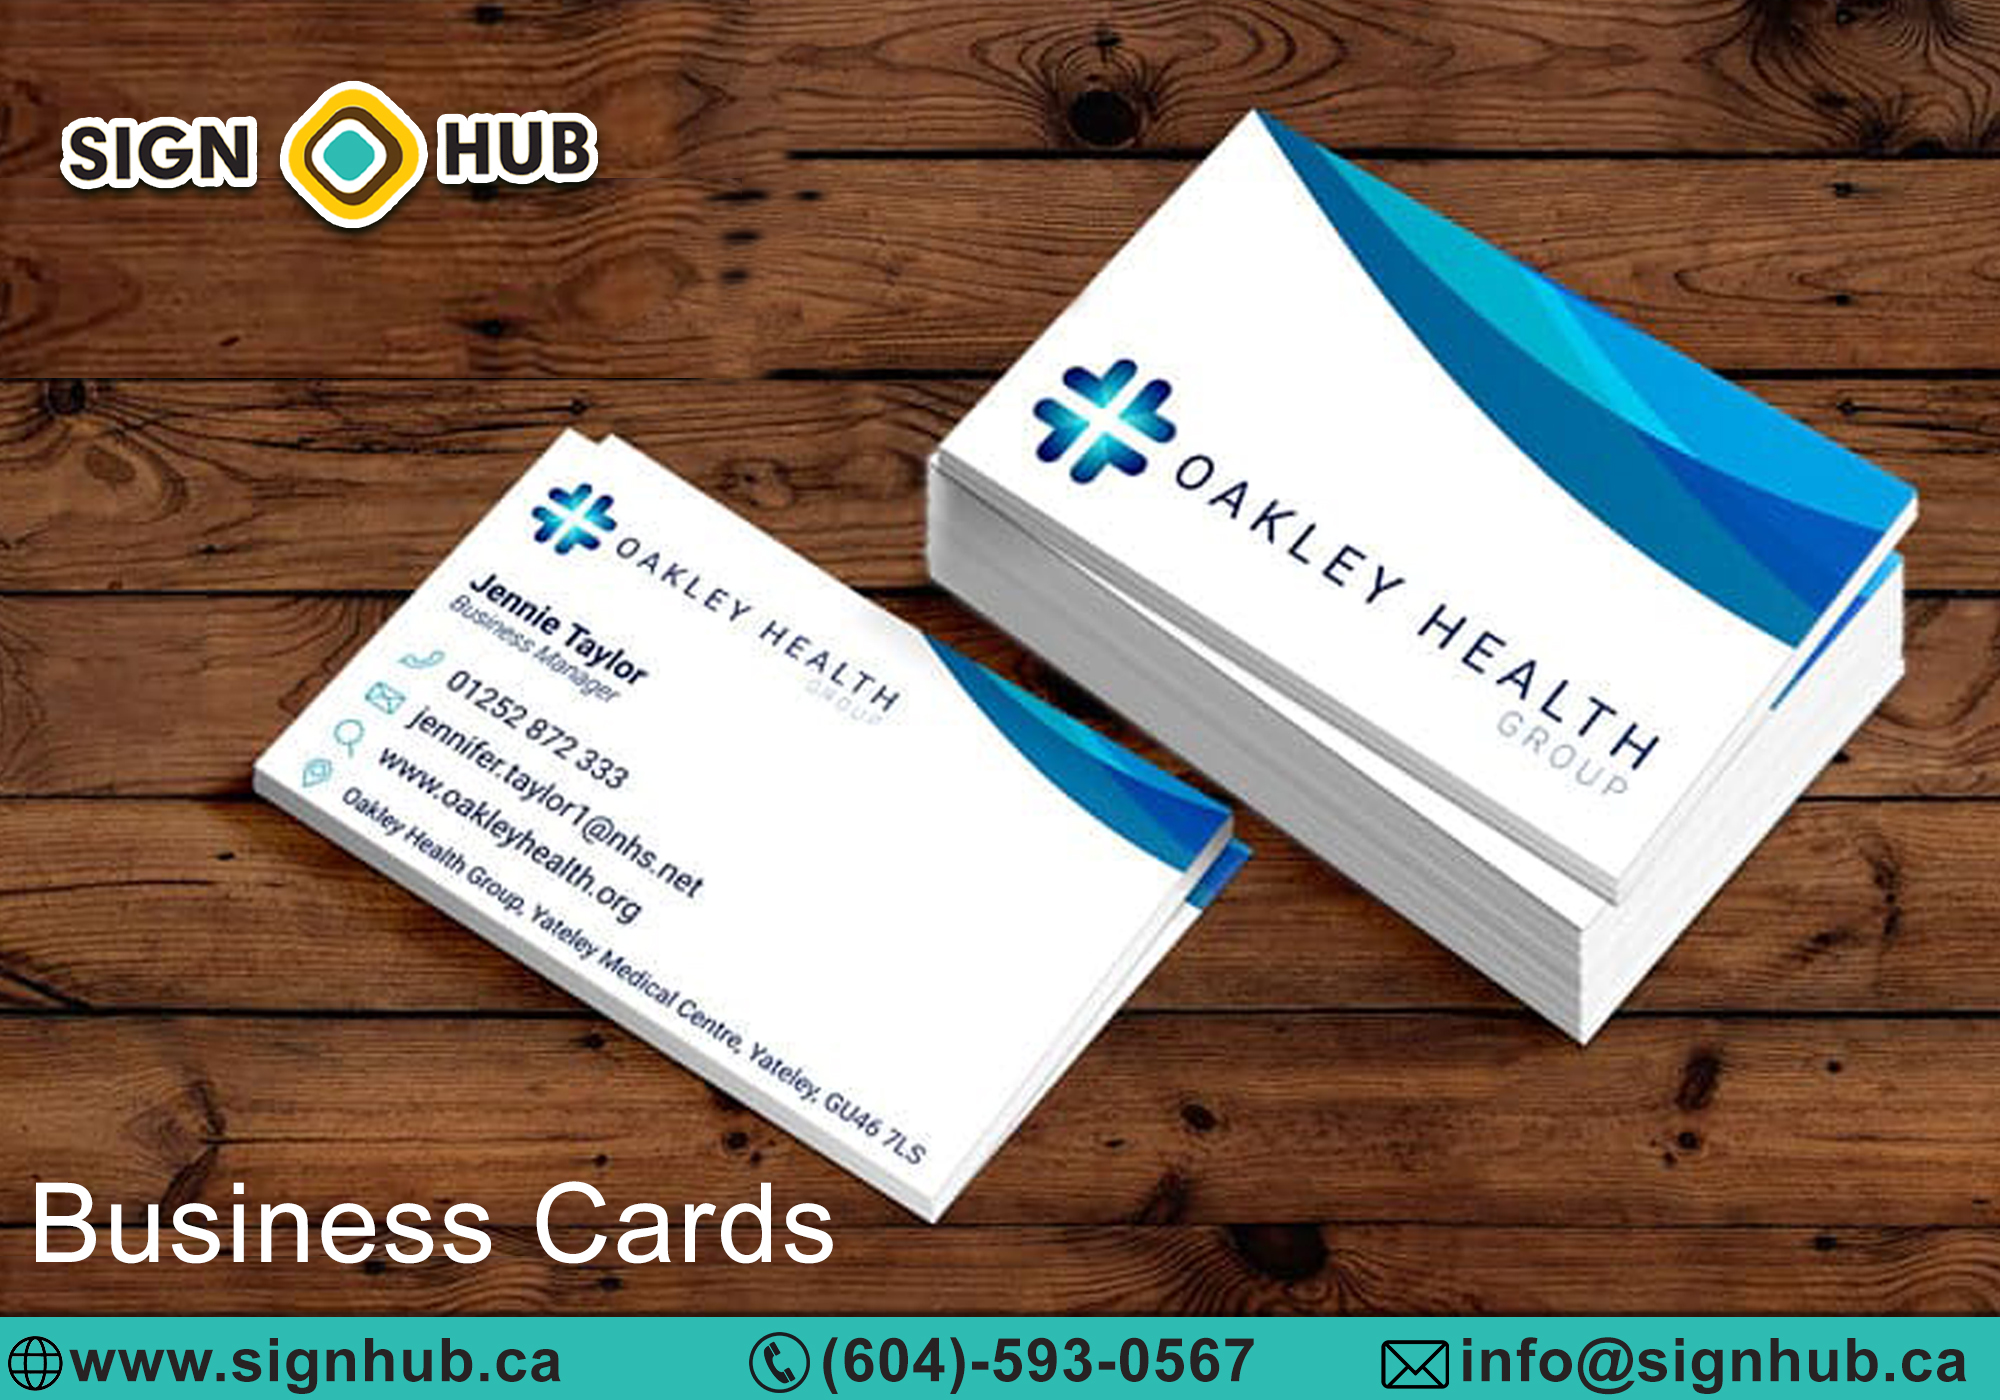 Business cards Surrey BC